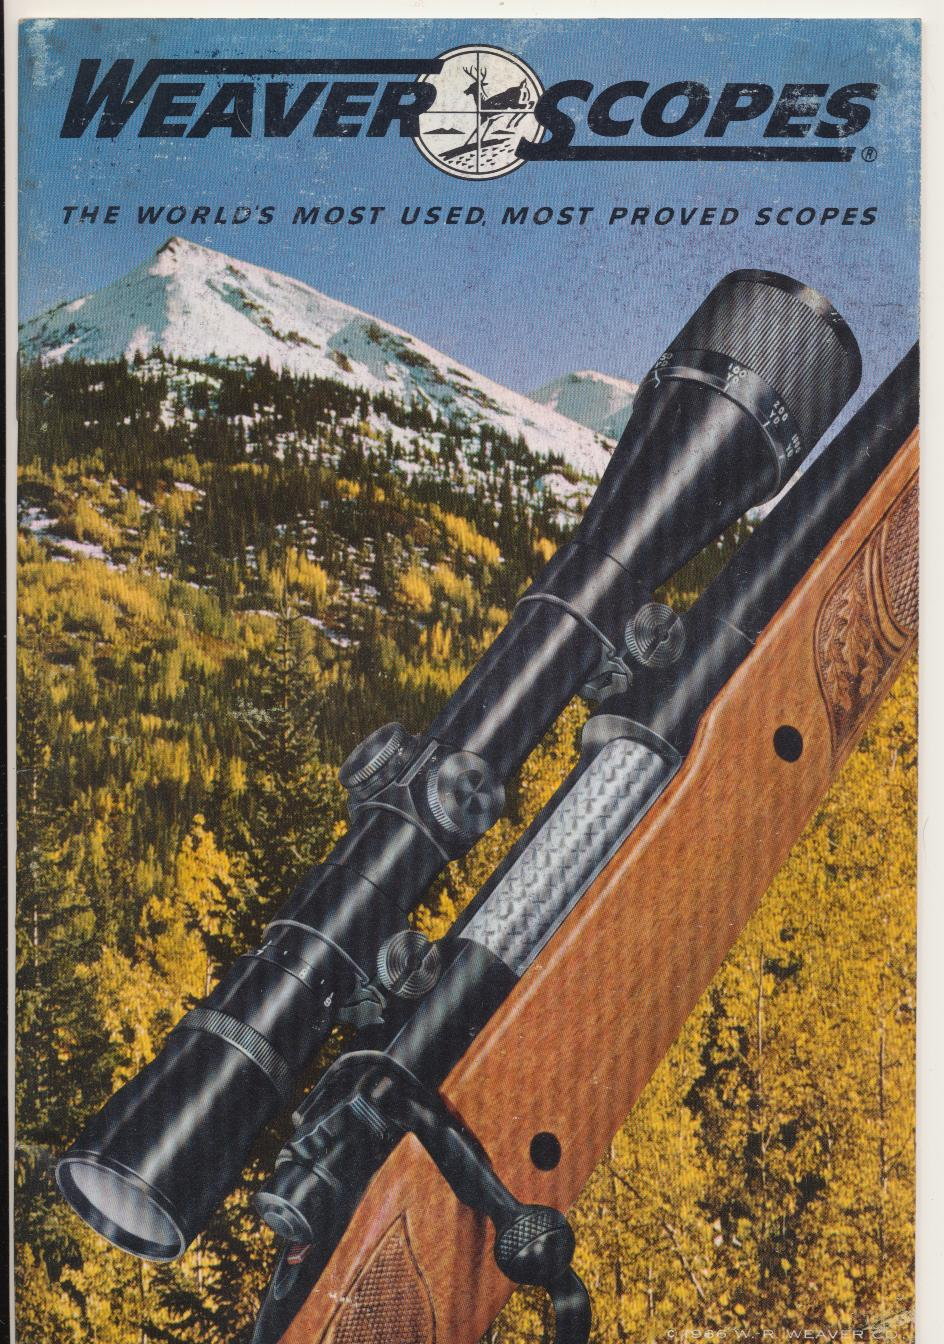 1966 Weaver Rifle Scopes Dealer Trade Catalog